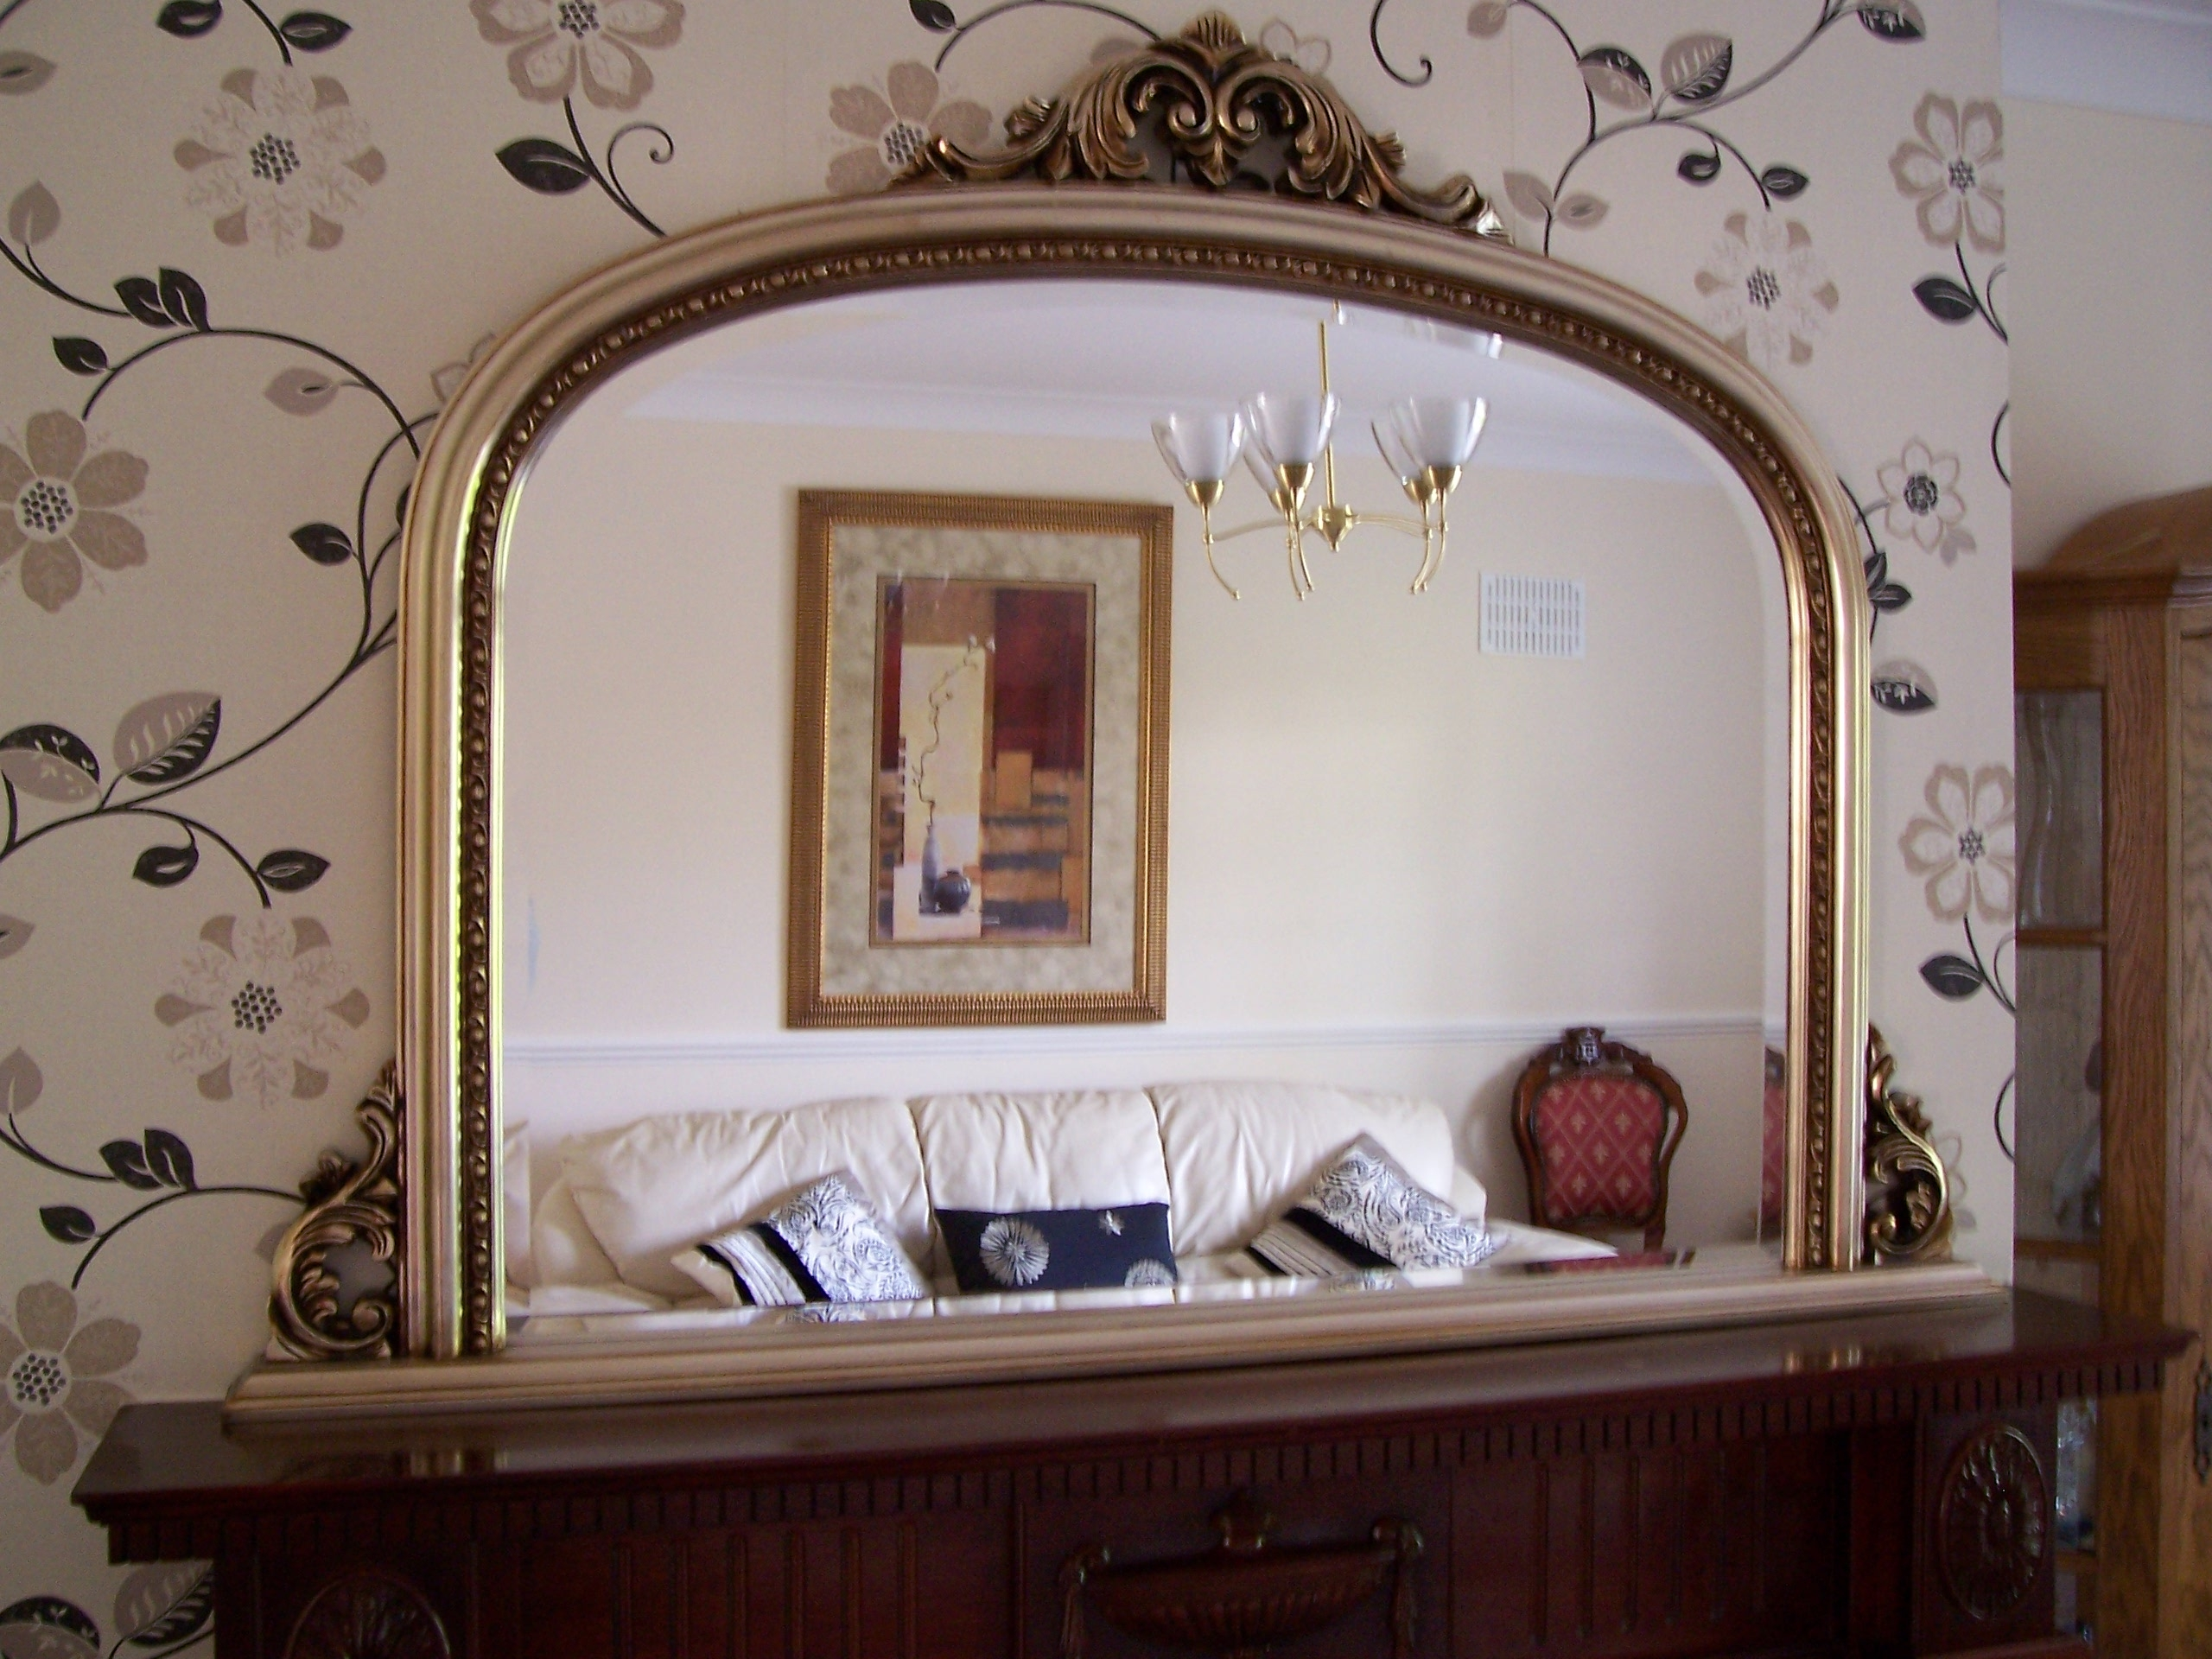 Crinken Glass Within Overmantel Mirrors (Image 4 of 15)